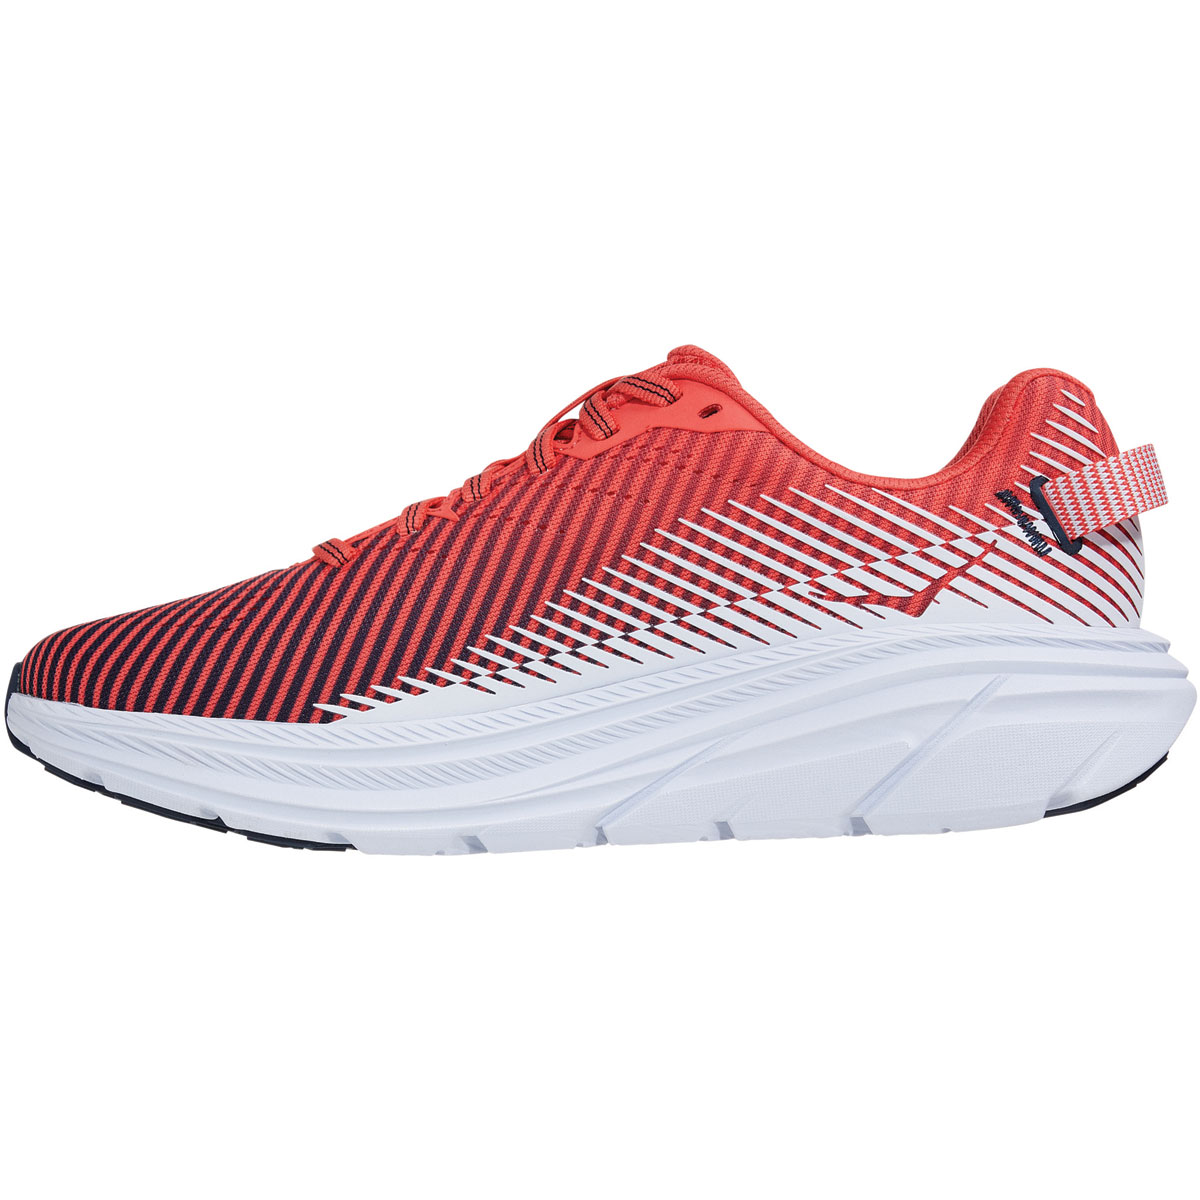 Women's Hoka One One Rincon 2 Running Shoe - Color: Hot Coral/White - Size: 5 - Width: Regular, Hot Coral/White, large, image 2